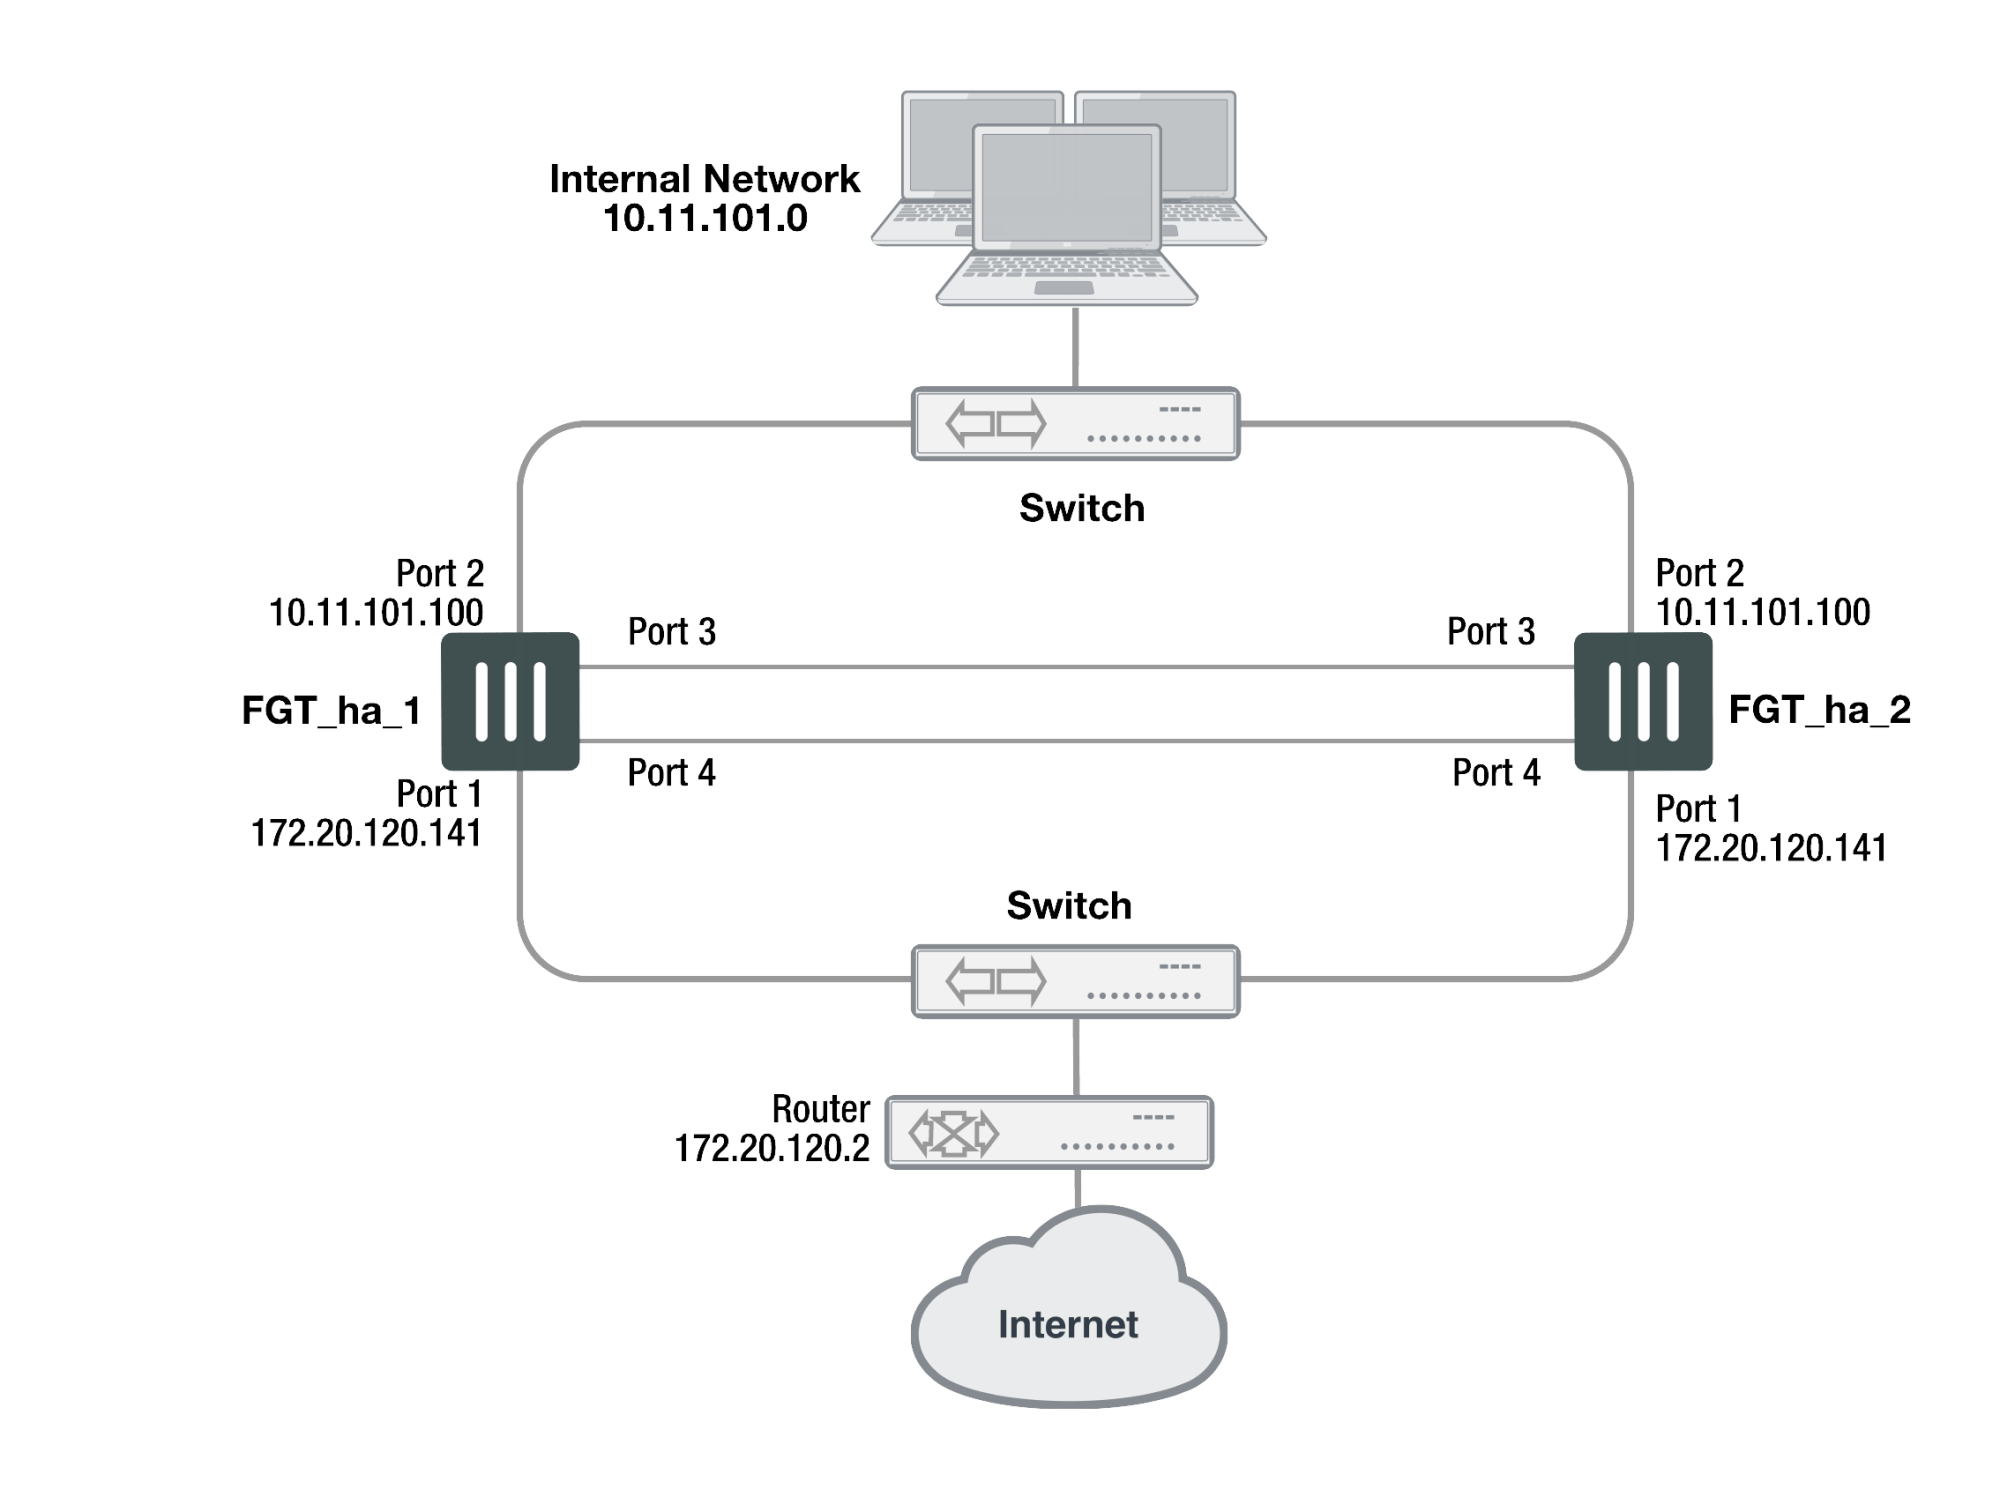 hight resolution of example nat route mode ha network topology